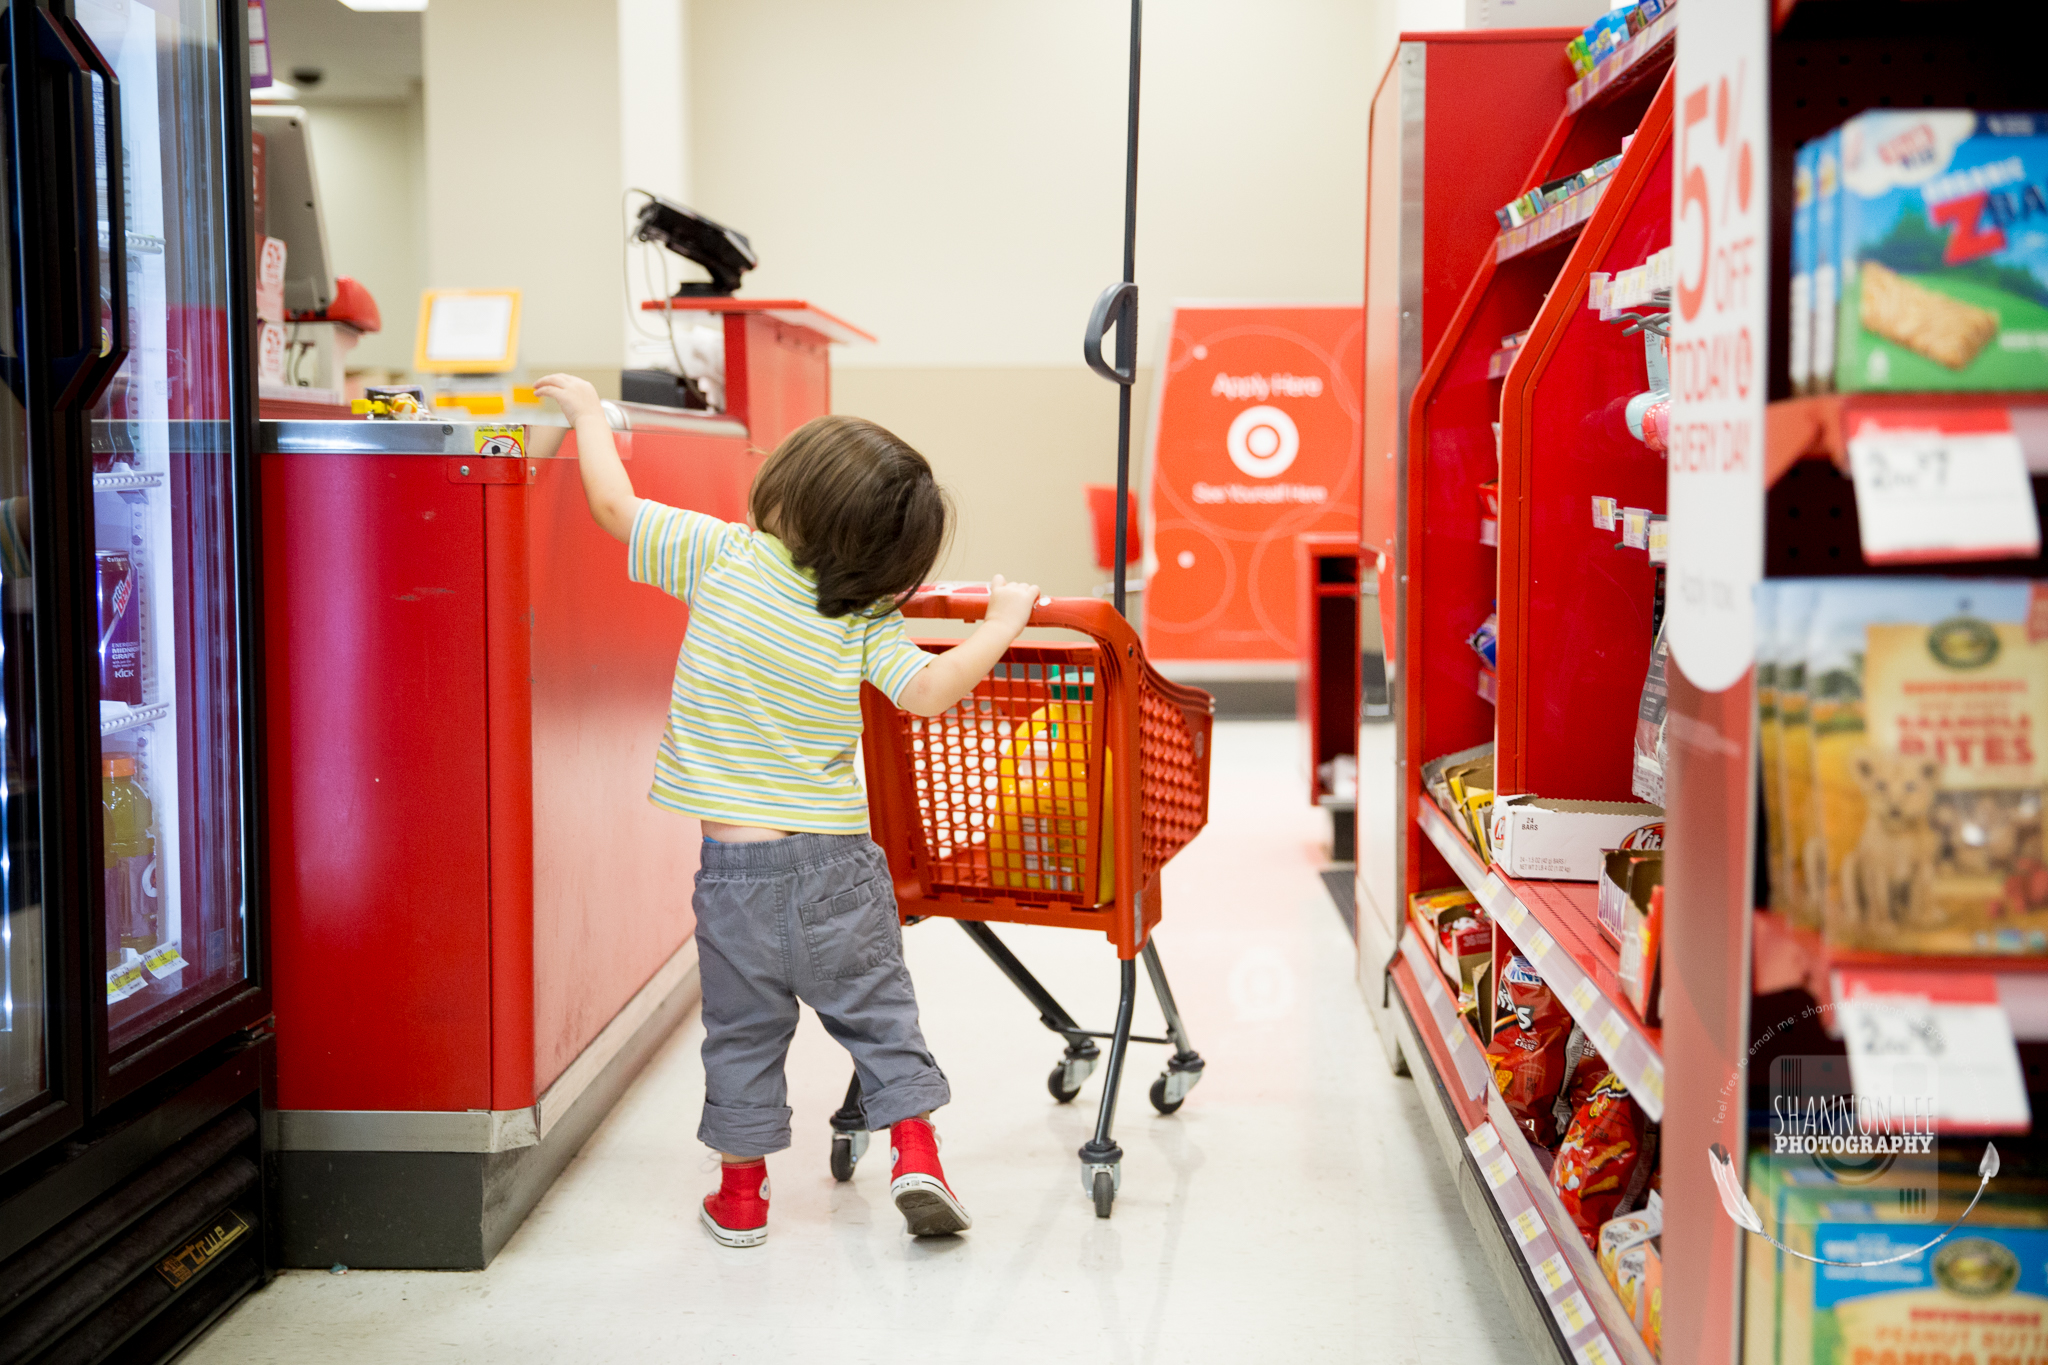 target-little-red-shopping-cart-shannon-lee-photography-long-island-New-York-1090.jpg